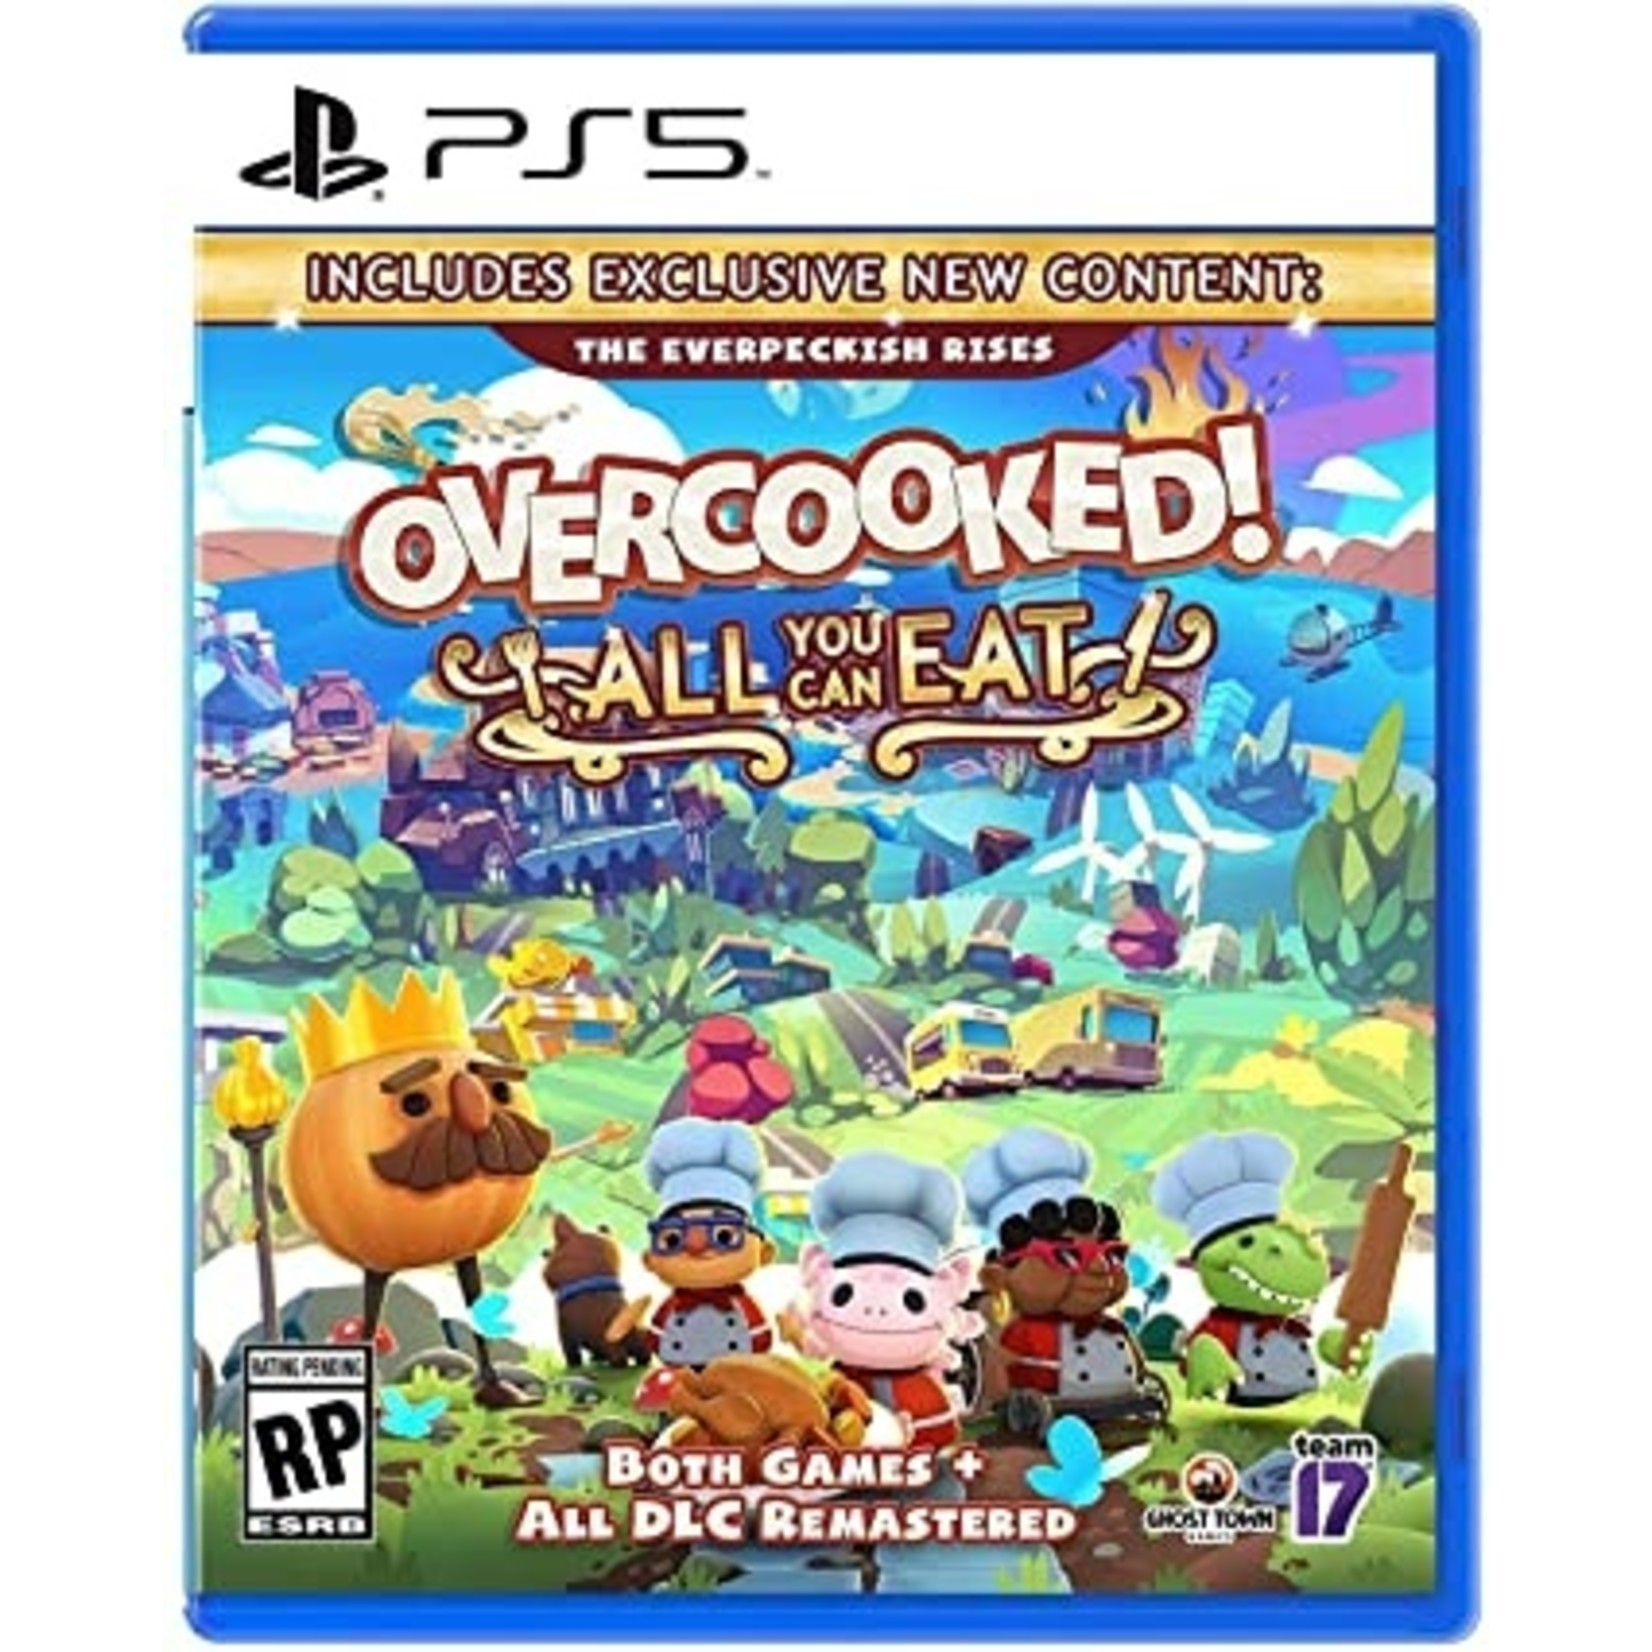 PS5-OVERCOOKED ALL YOU CAN EAT